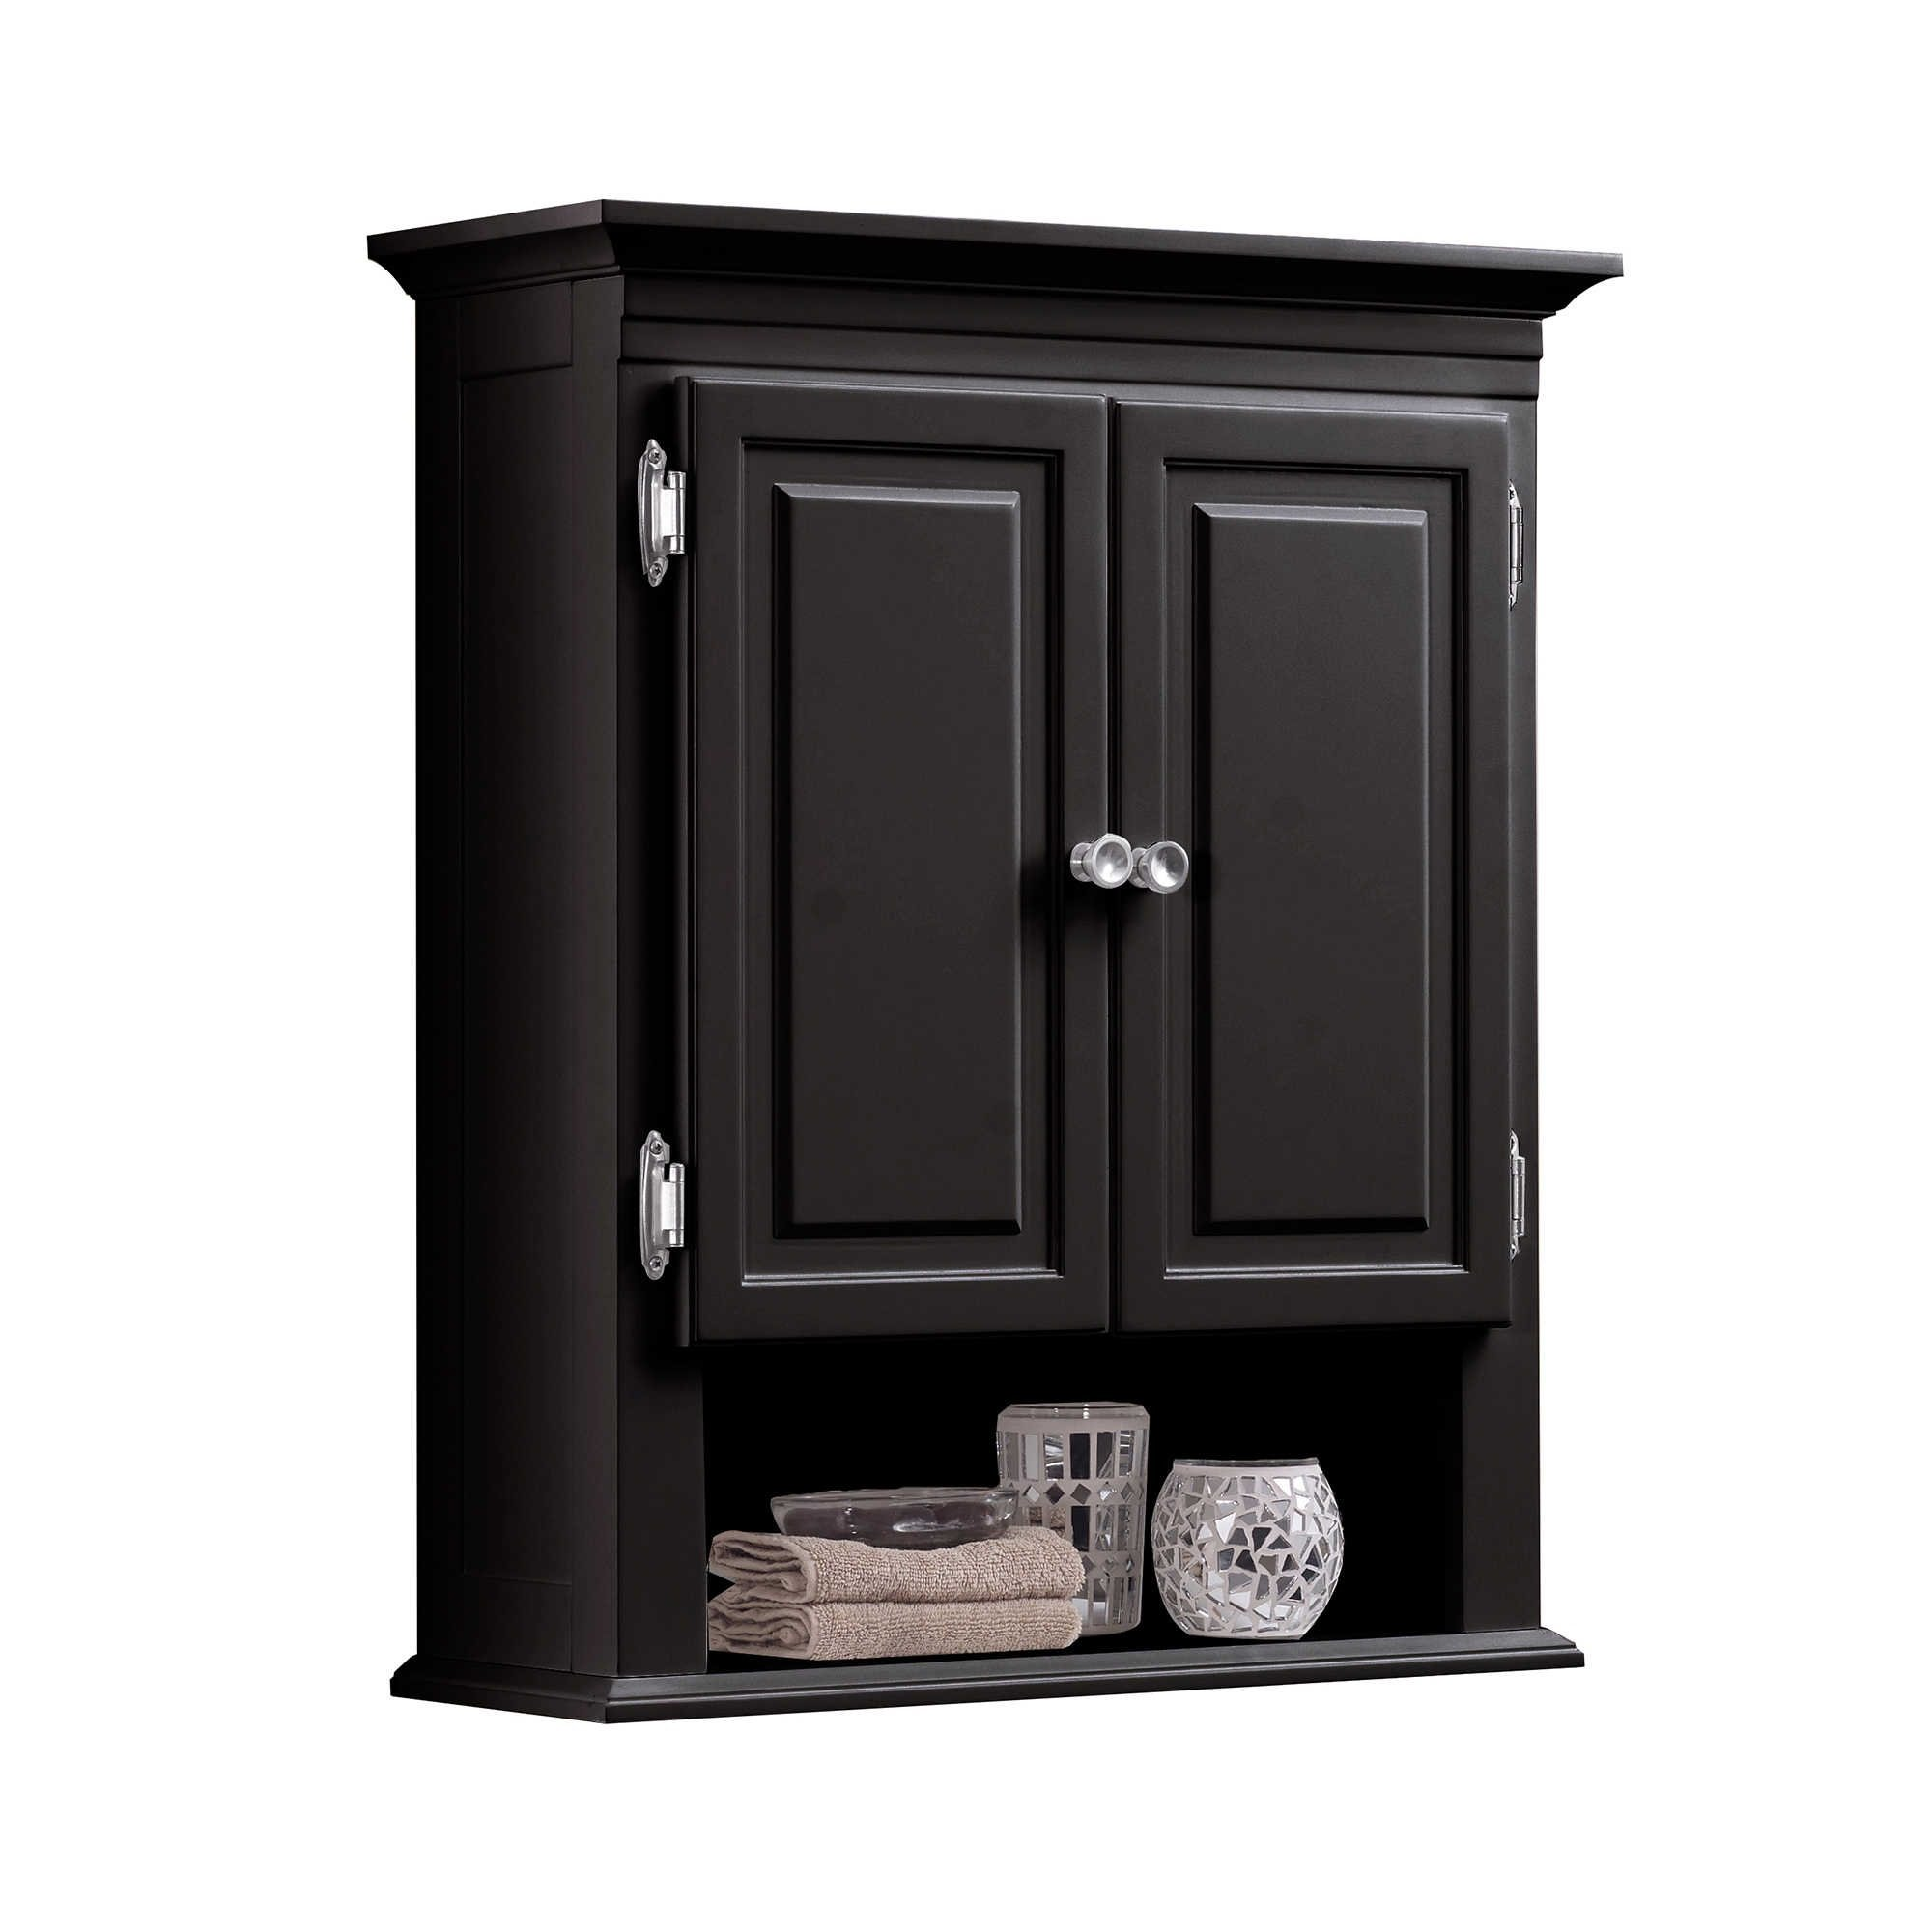 Wakefield 3-Shelf with 2-Doors Bathroom Wall Mount Cabinet in Espresso